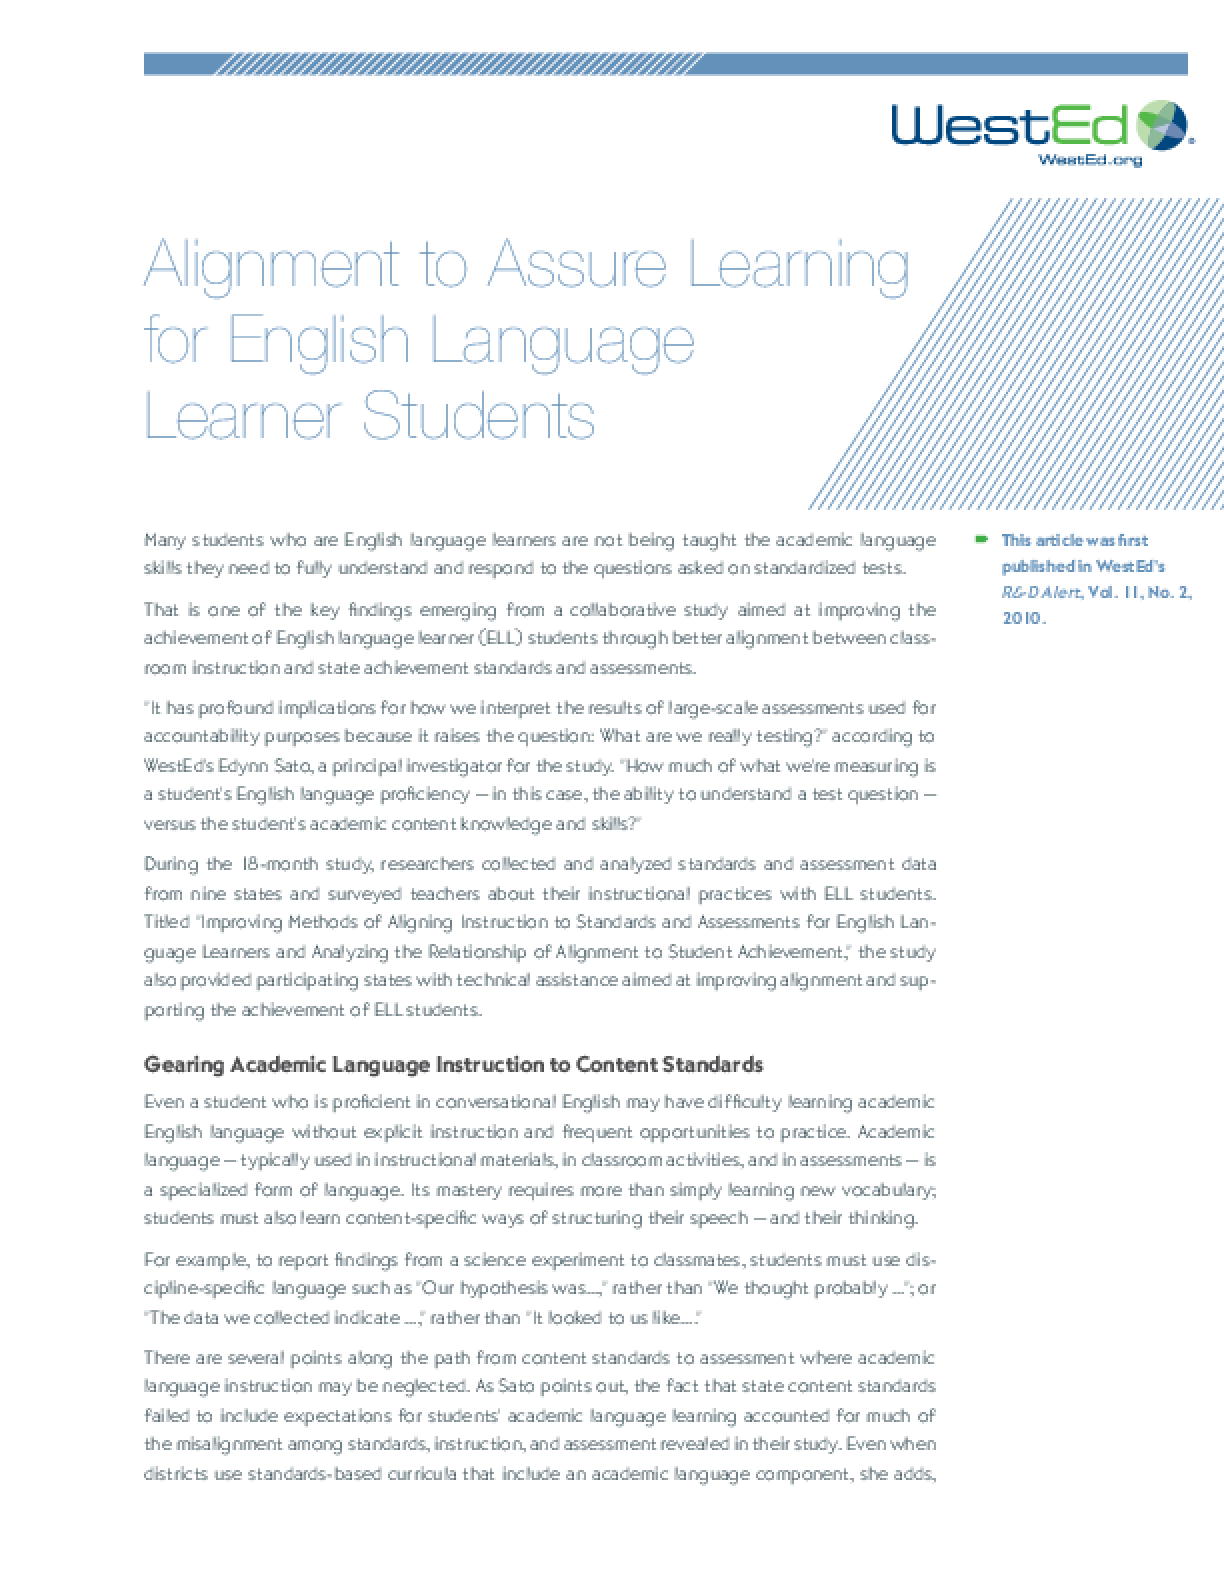 Alignment to Assure Learning for ELL Students